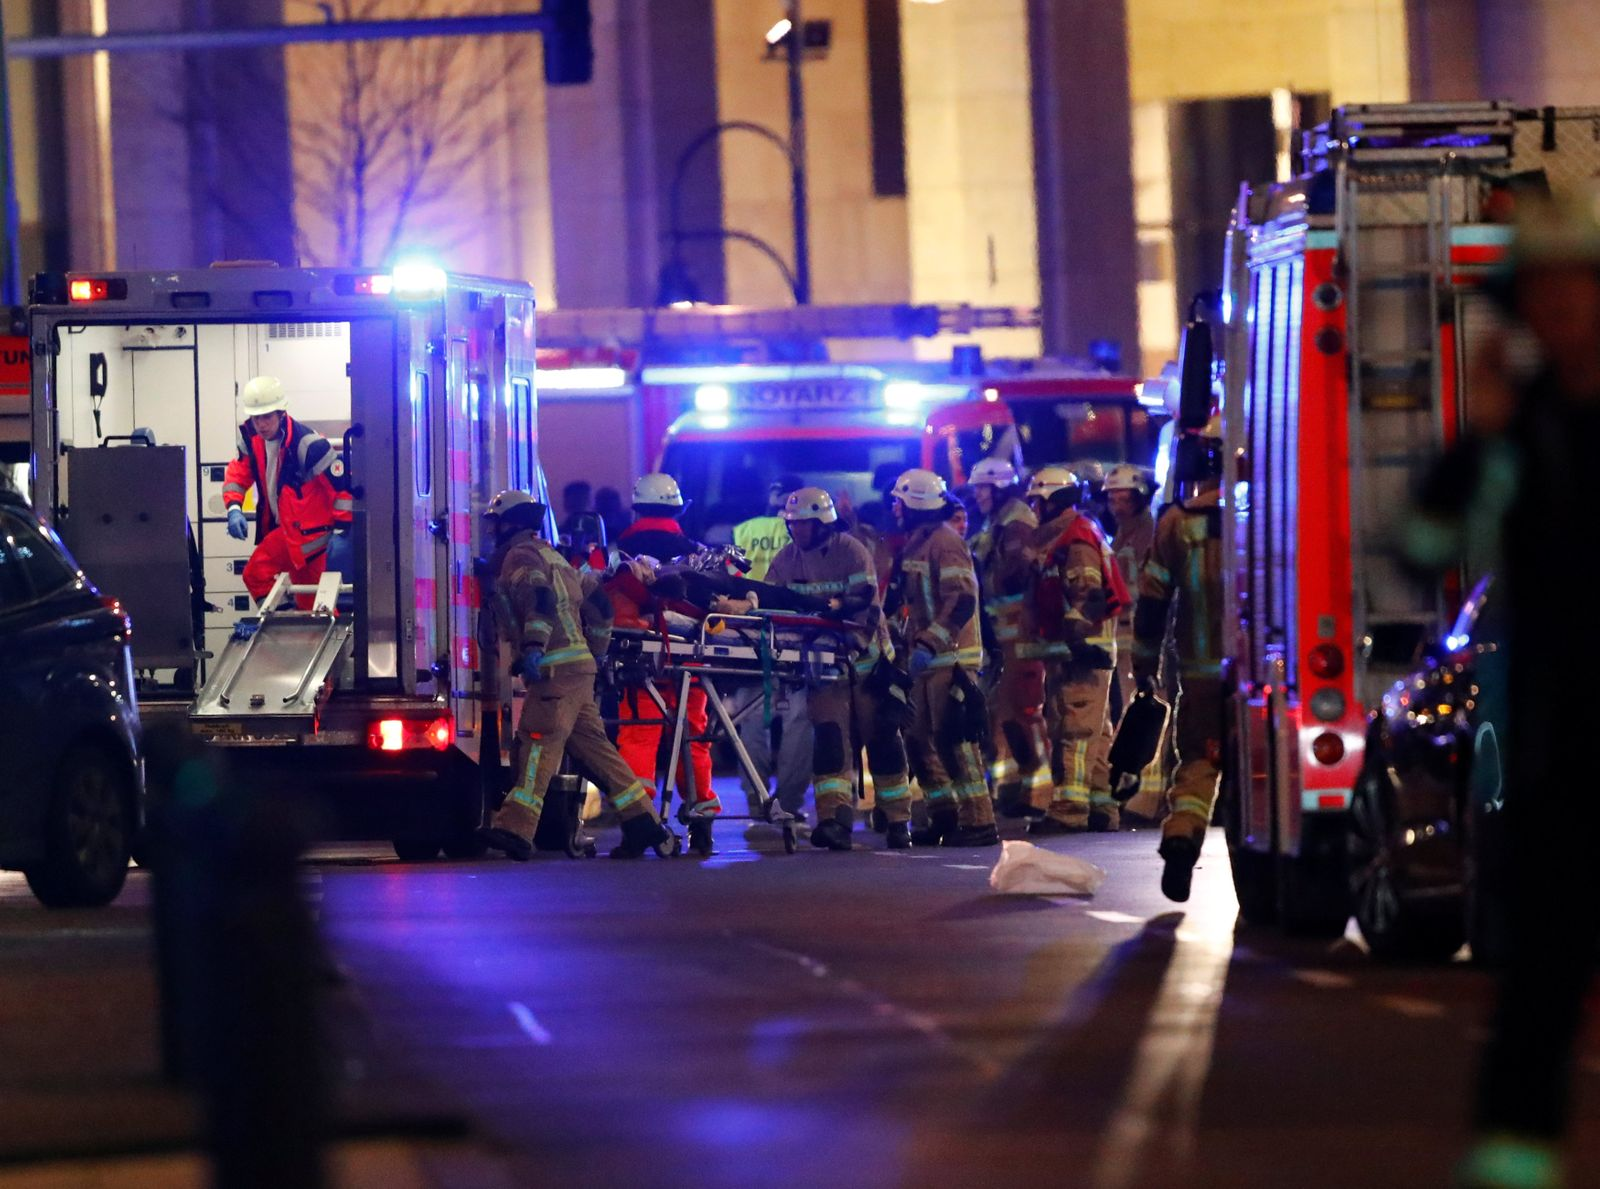 Police and emergency workers are at the site of an accident at a Christmas market in Berlin